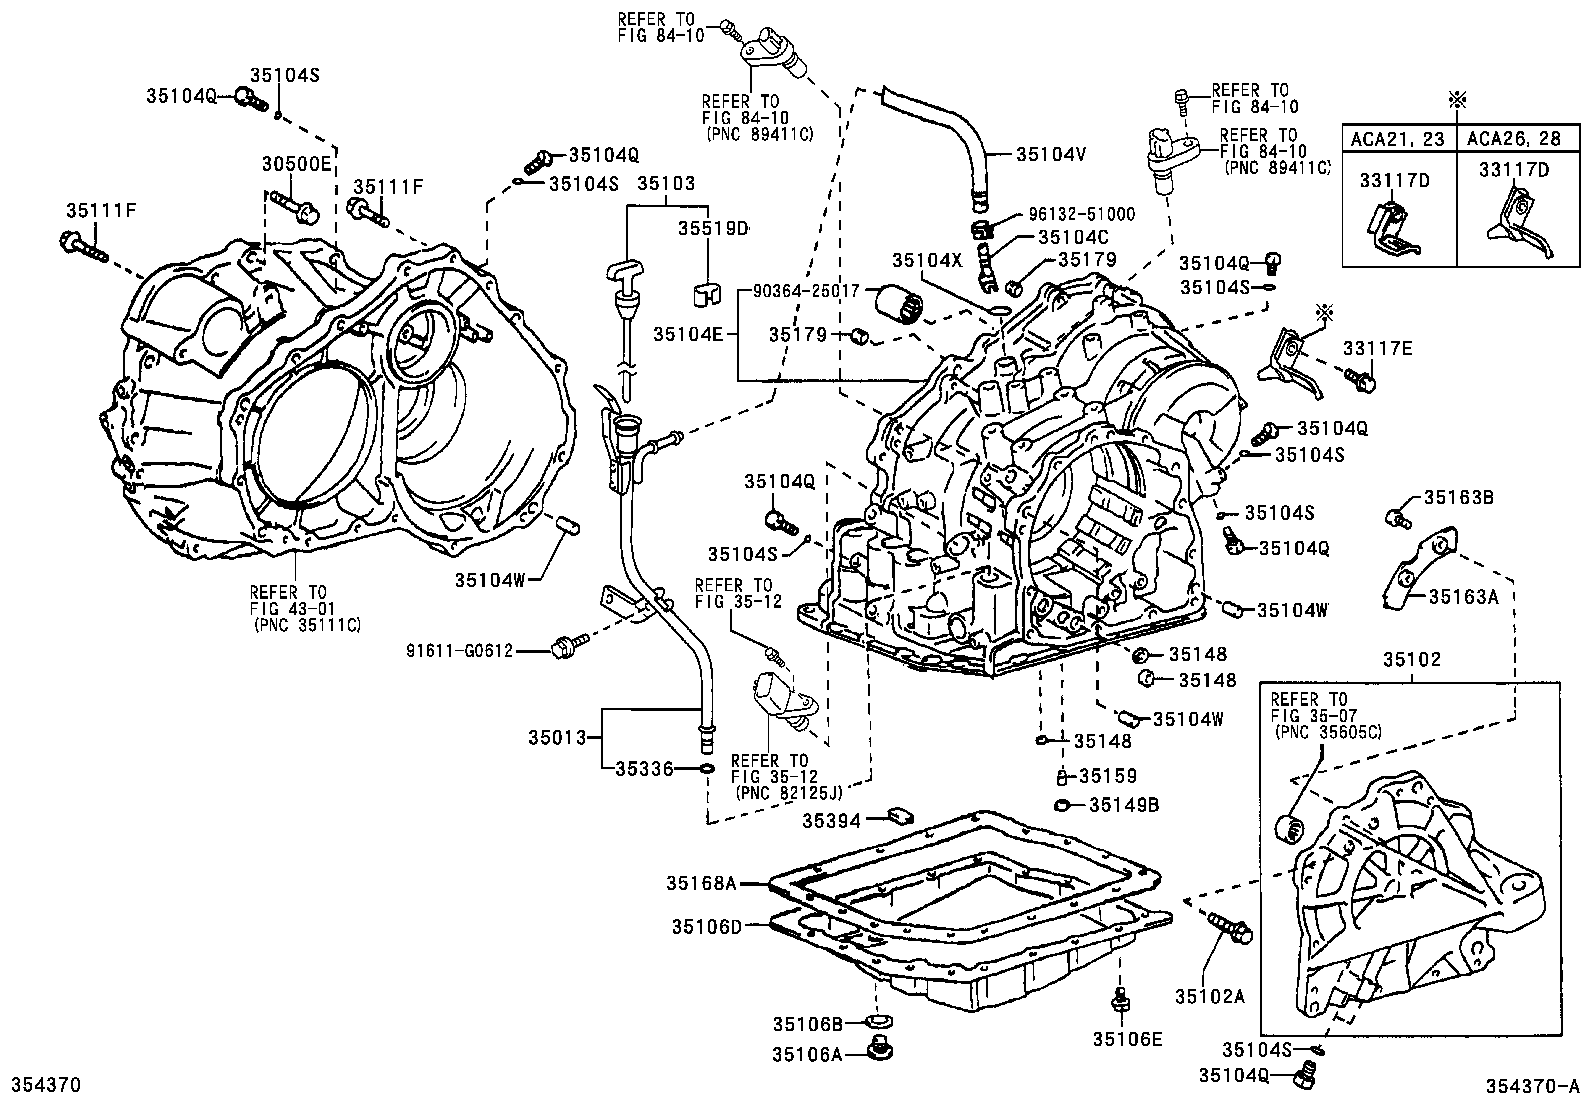 2001 toyota rav4 parts diagram wiring diagram 2004 Toyota RAV4 Engine  Diagram 2011 RAV4 Engine Diagram